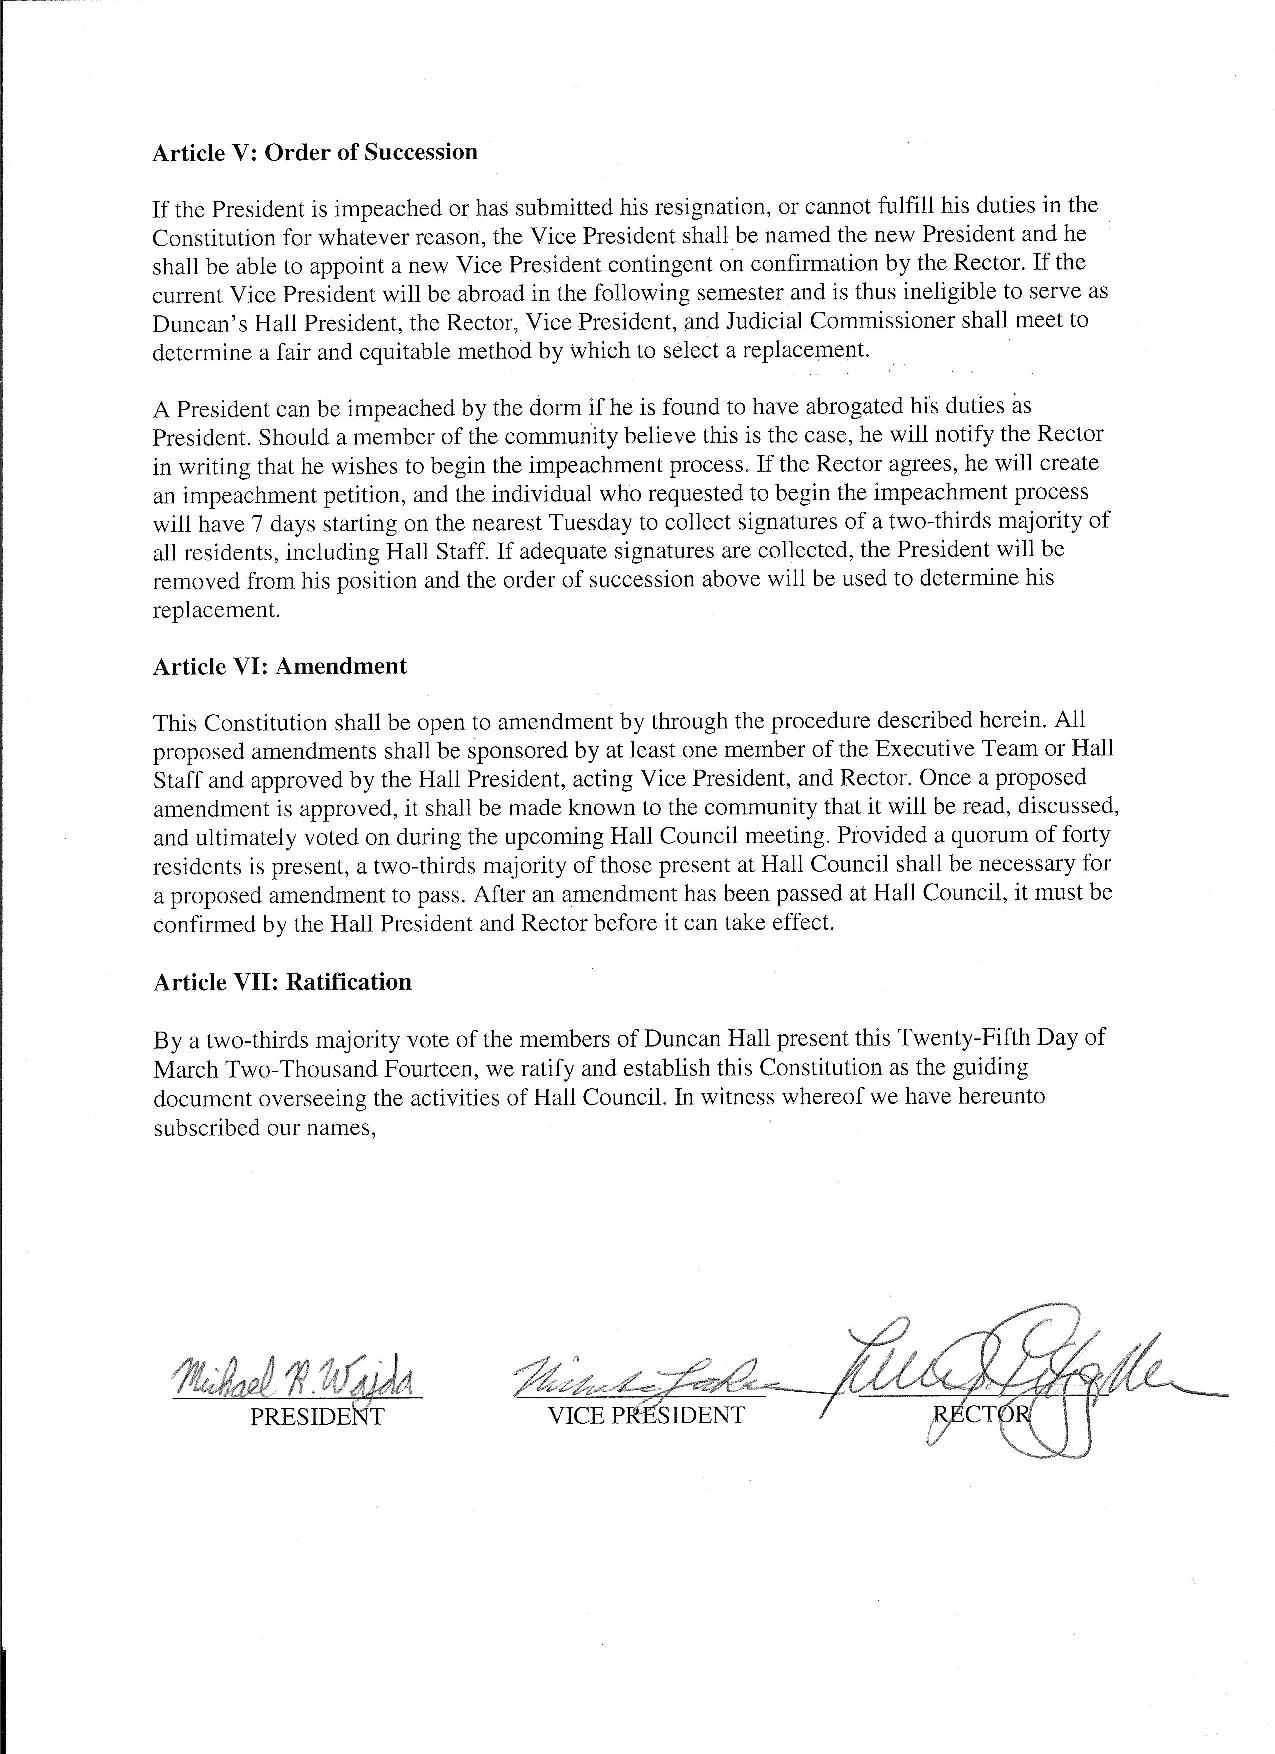 Duncan Hall Constitution April 2014-1-page-004.jpg